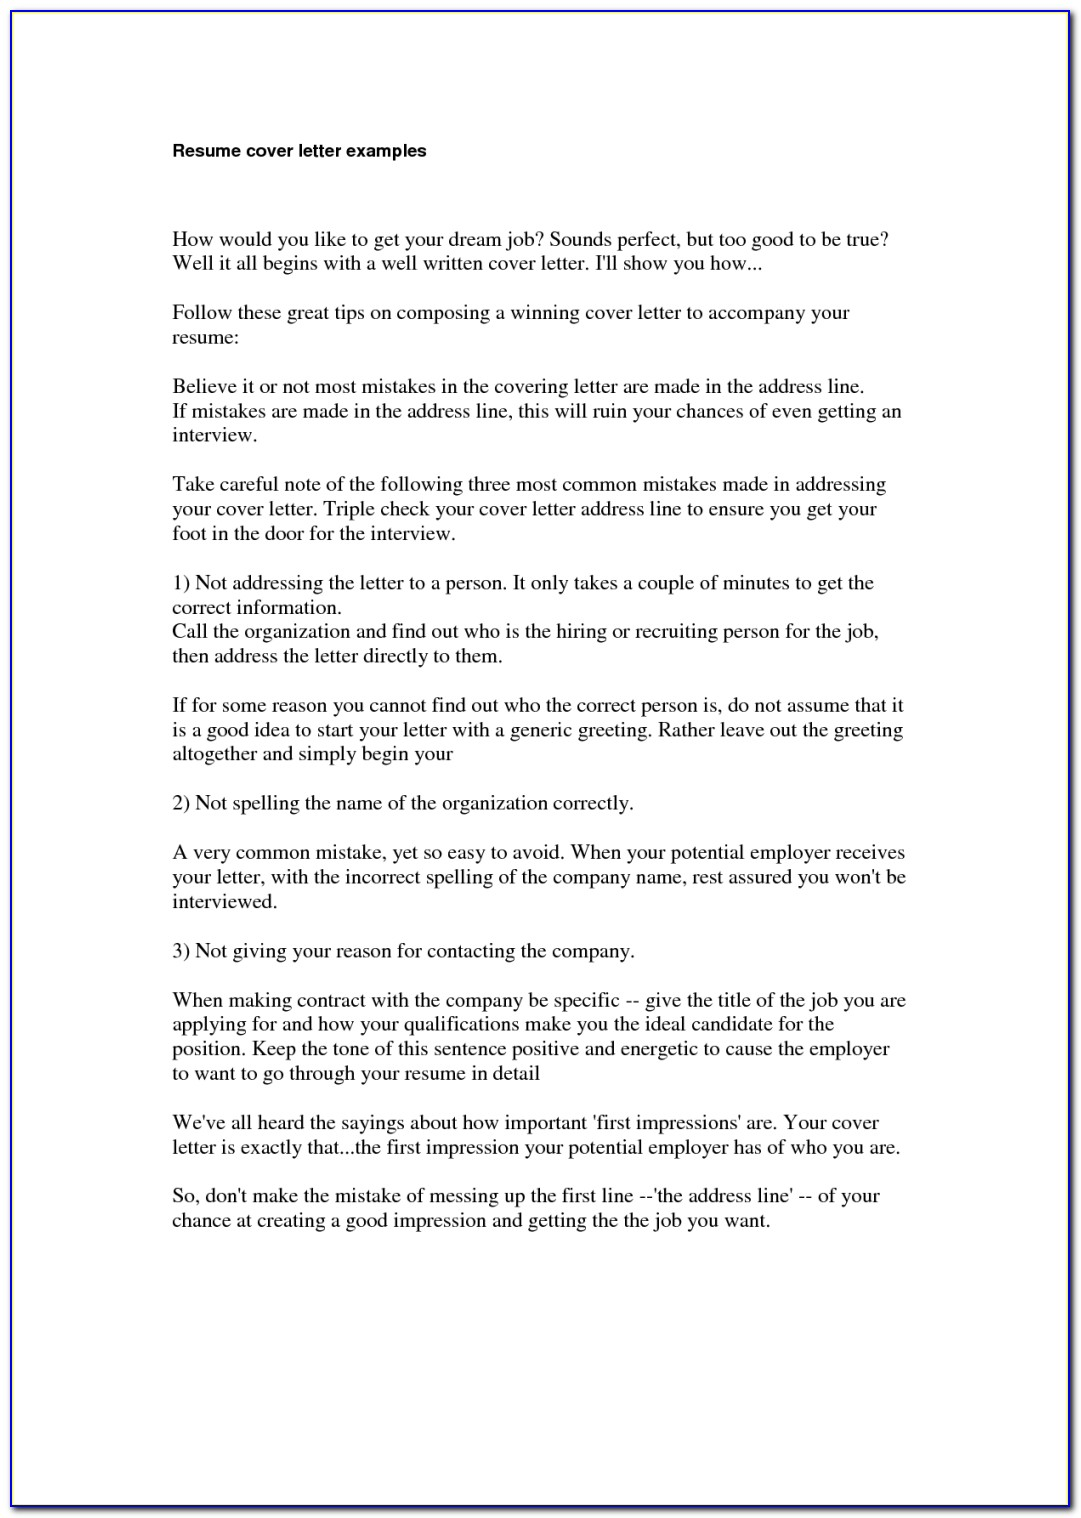 Resume 5 Example Of A Good Cover Letter Transvall In An Example Of Within How To Make The Perfect Resume And Cover Letter